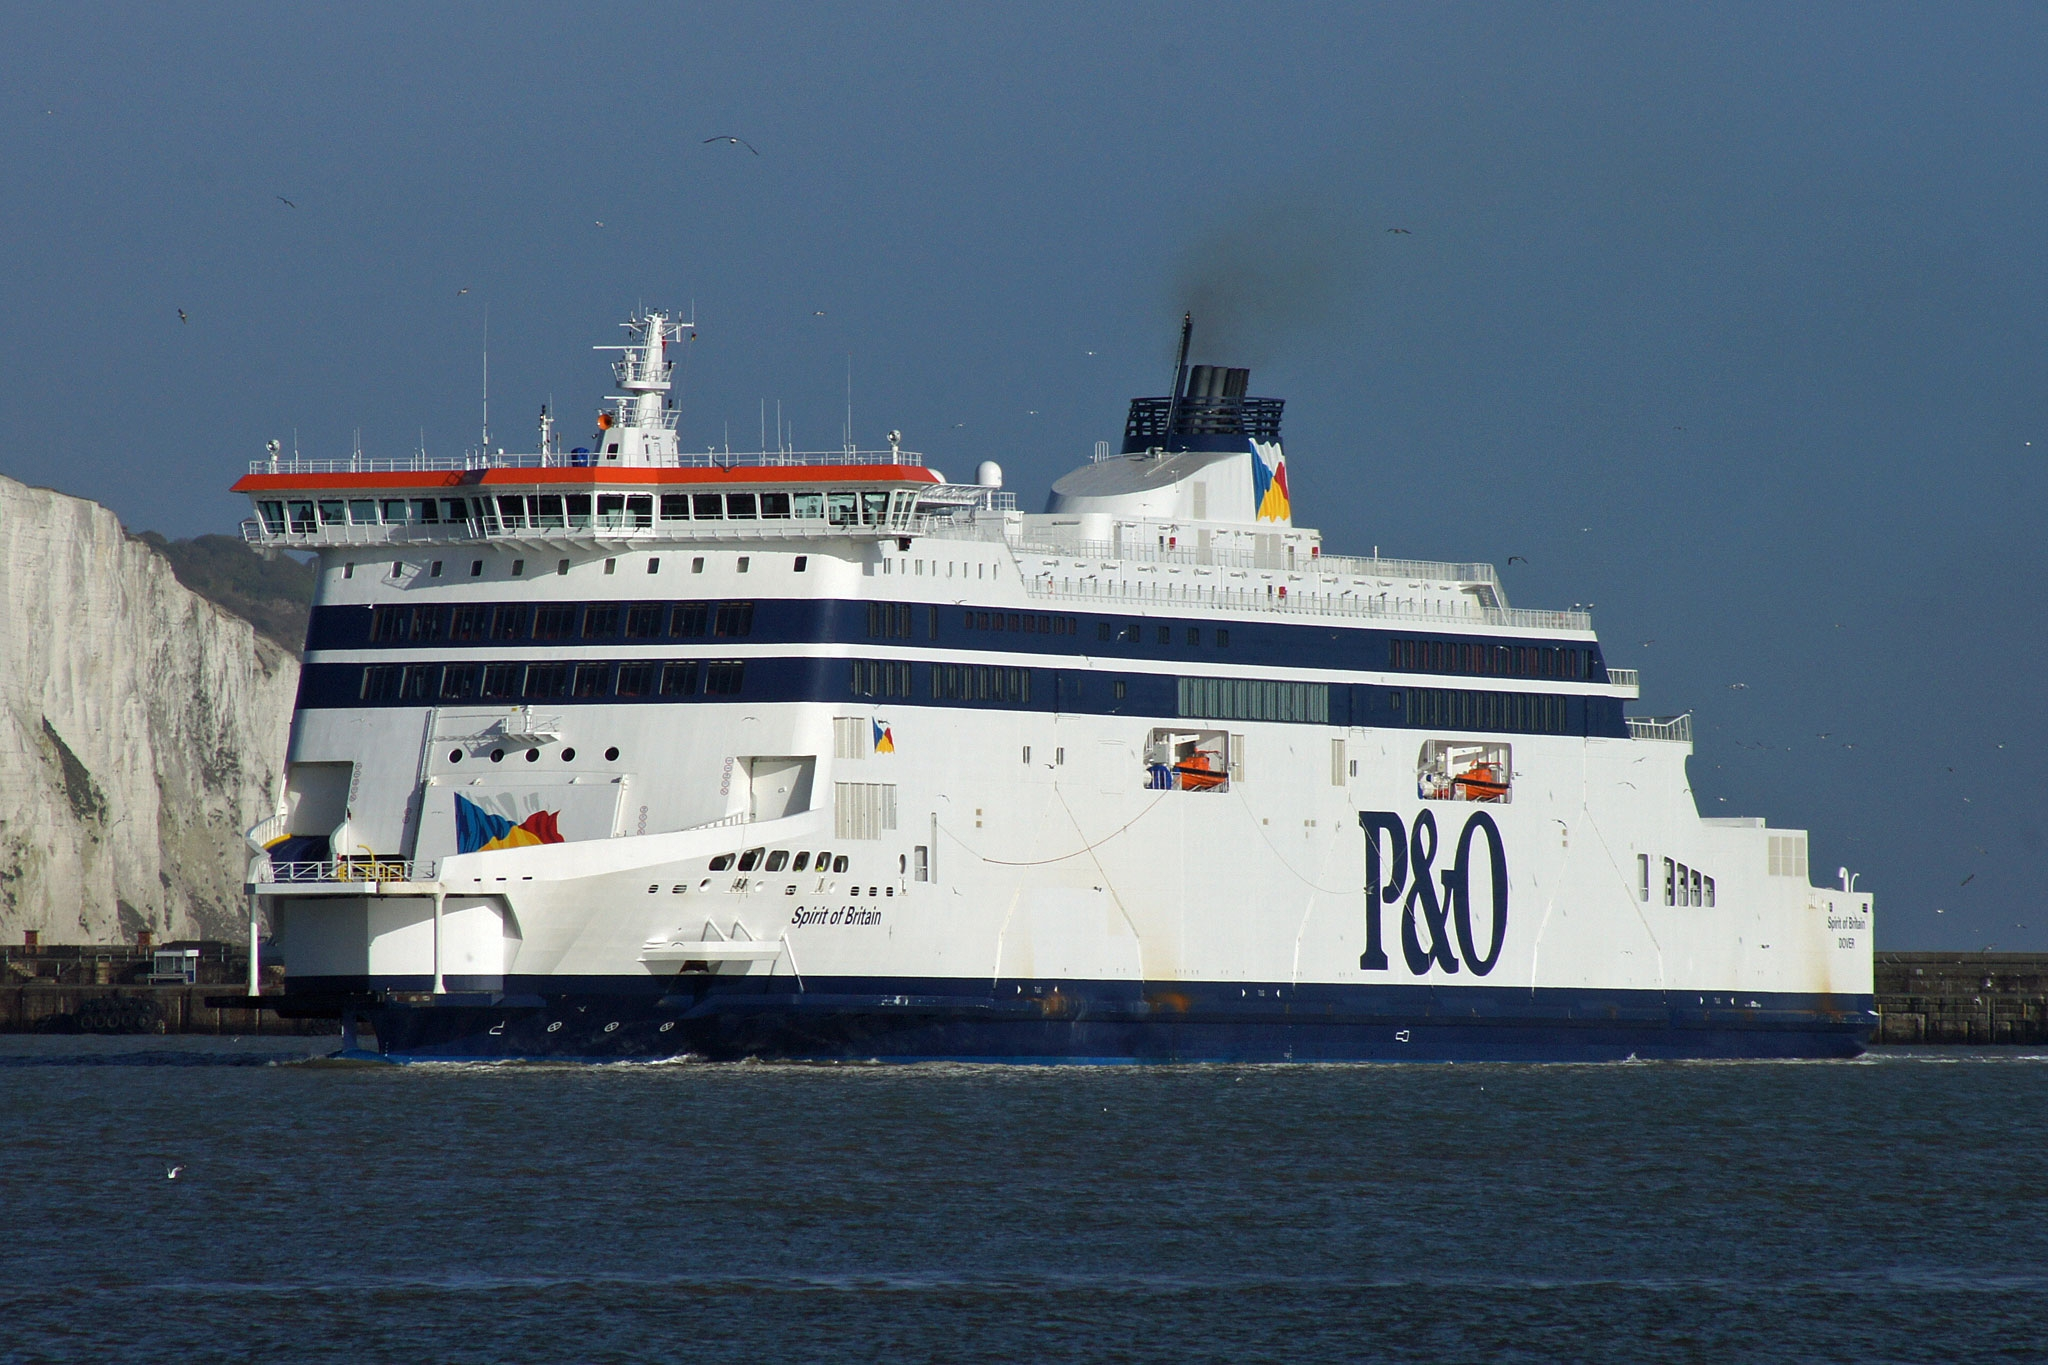 P&O Ferries flagship SPIRIT OF BRITAIN arriving at Dover on February 3rd 2011. Copyright © Ian Boyle.